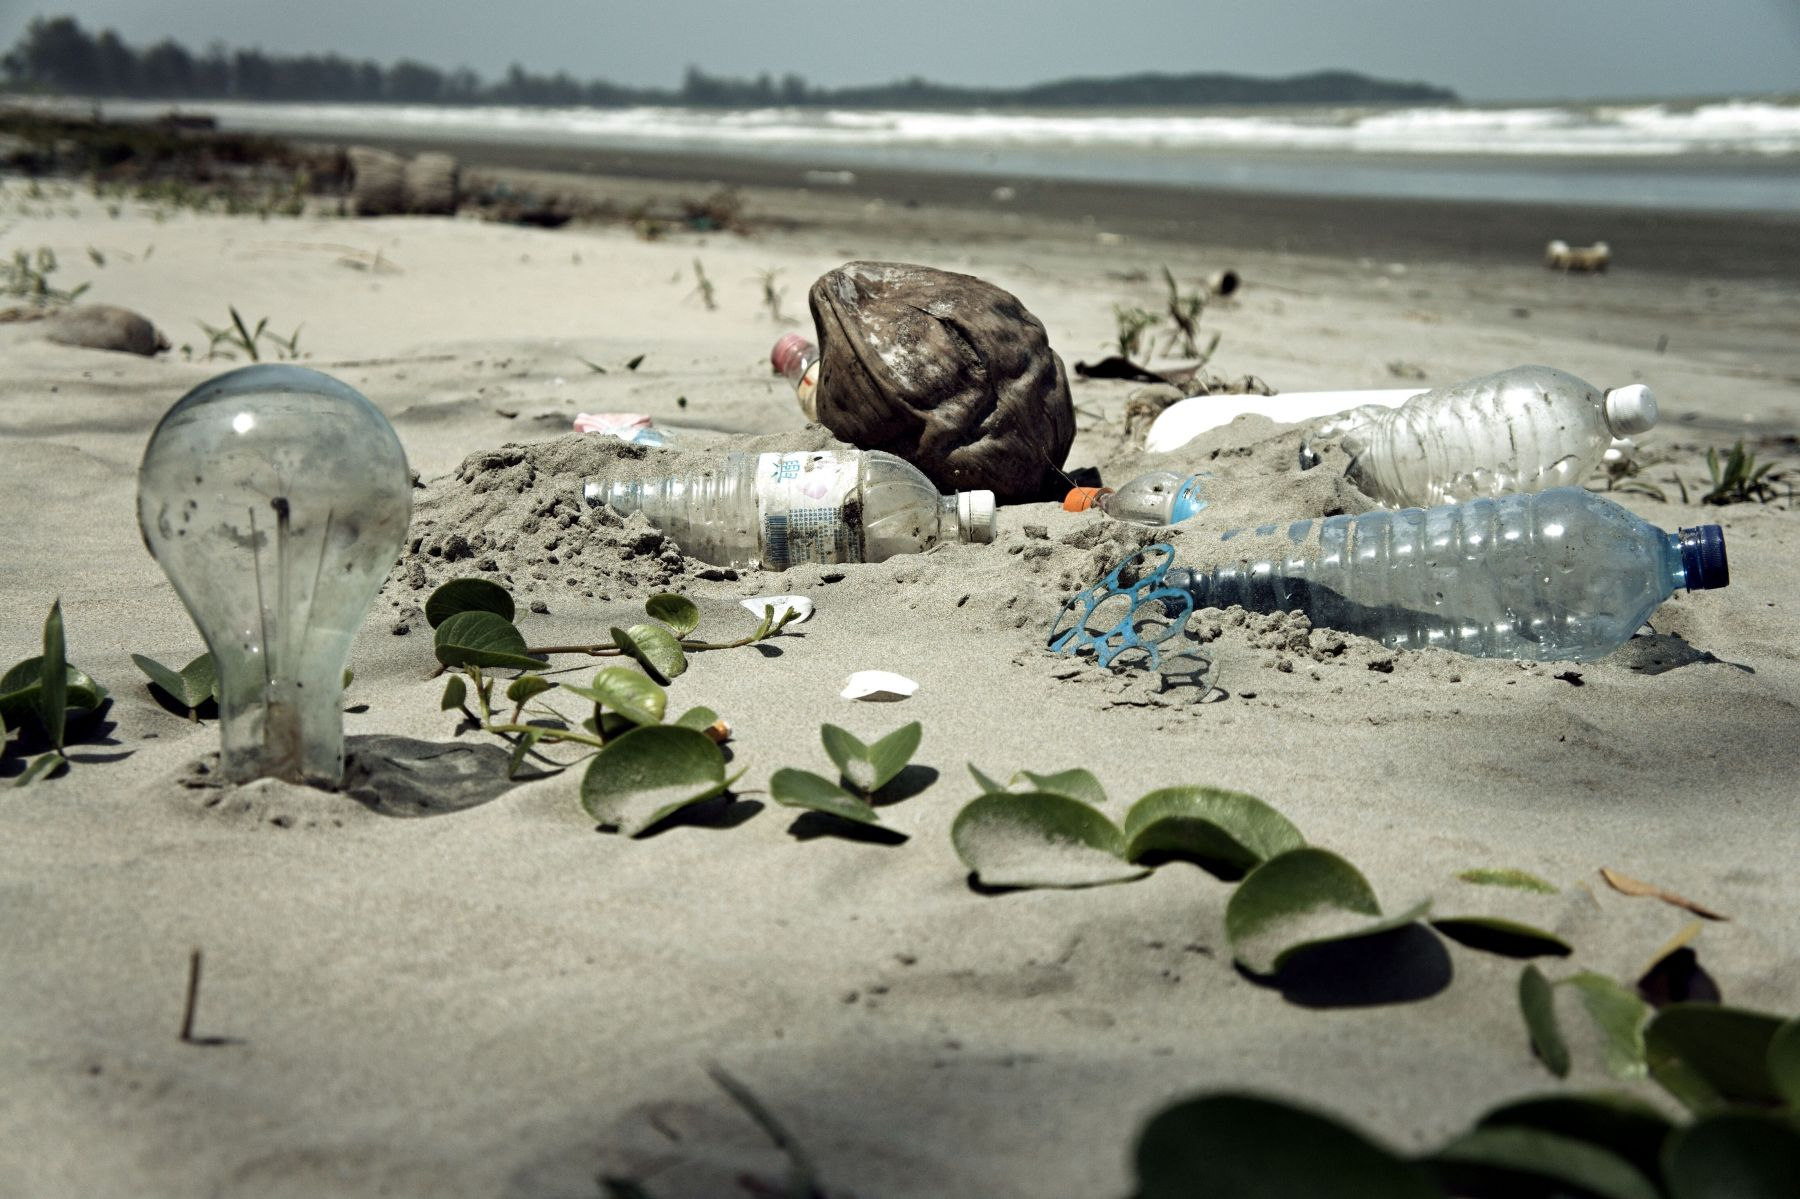 Plastic-eating bacteria could solve the problem of plastic pollution